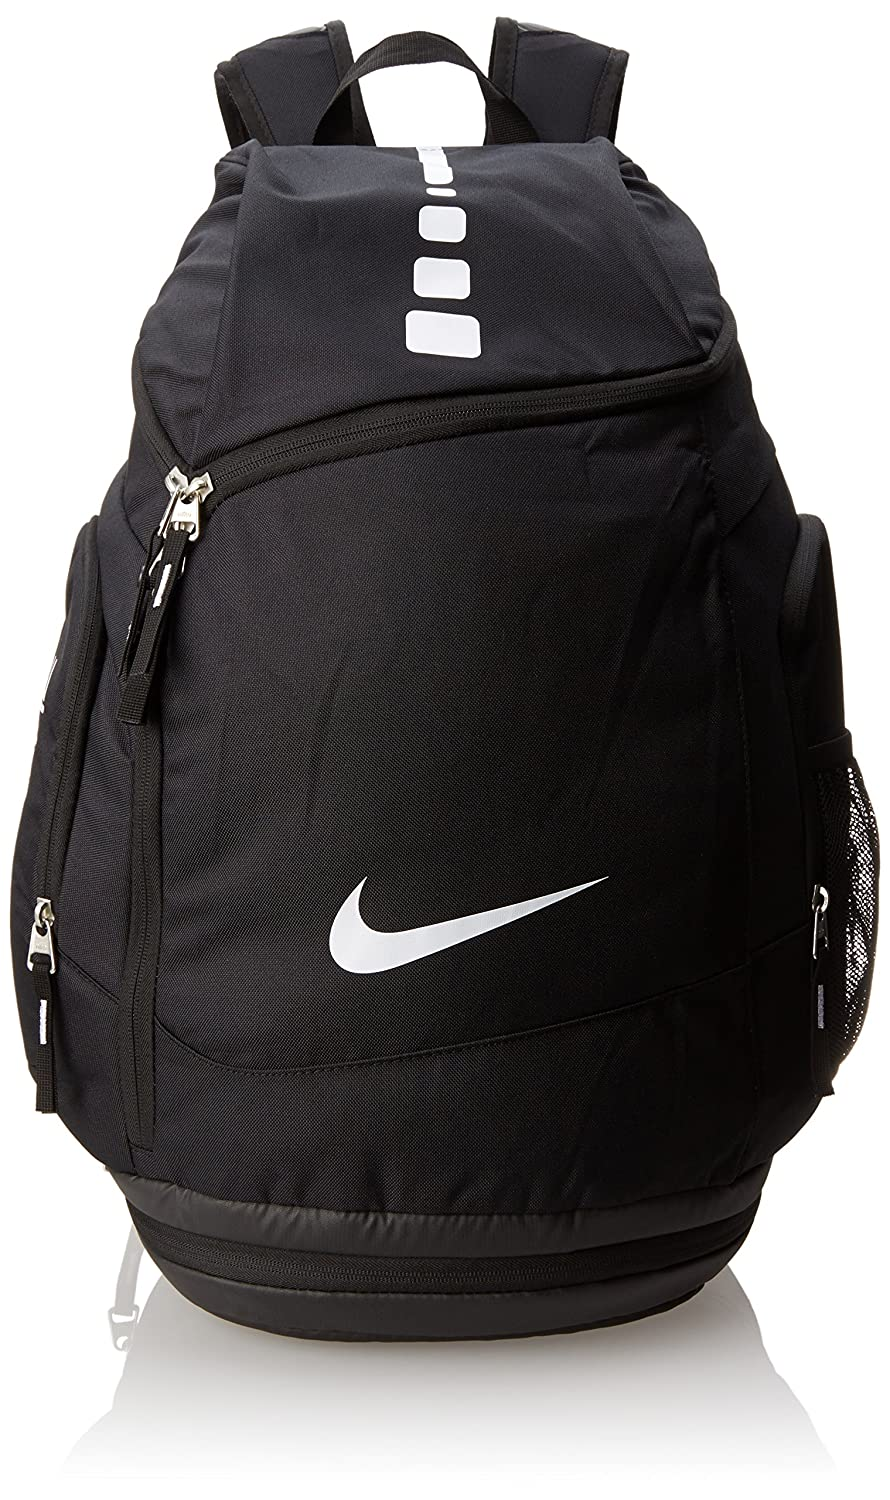 Nike Basketball Bags | www.pixshark.com - Images Galleries With A Bite!